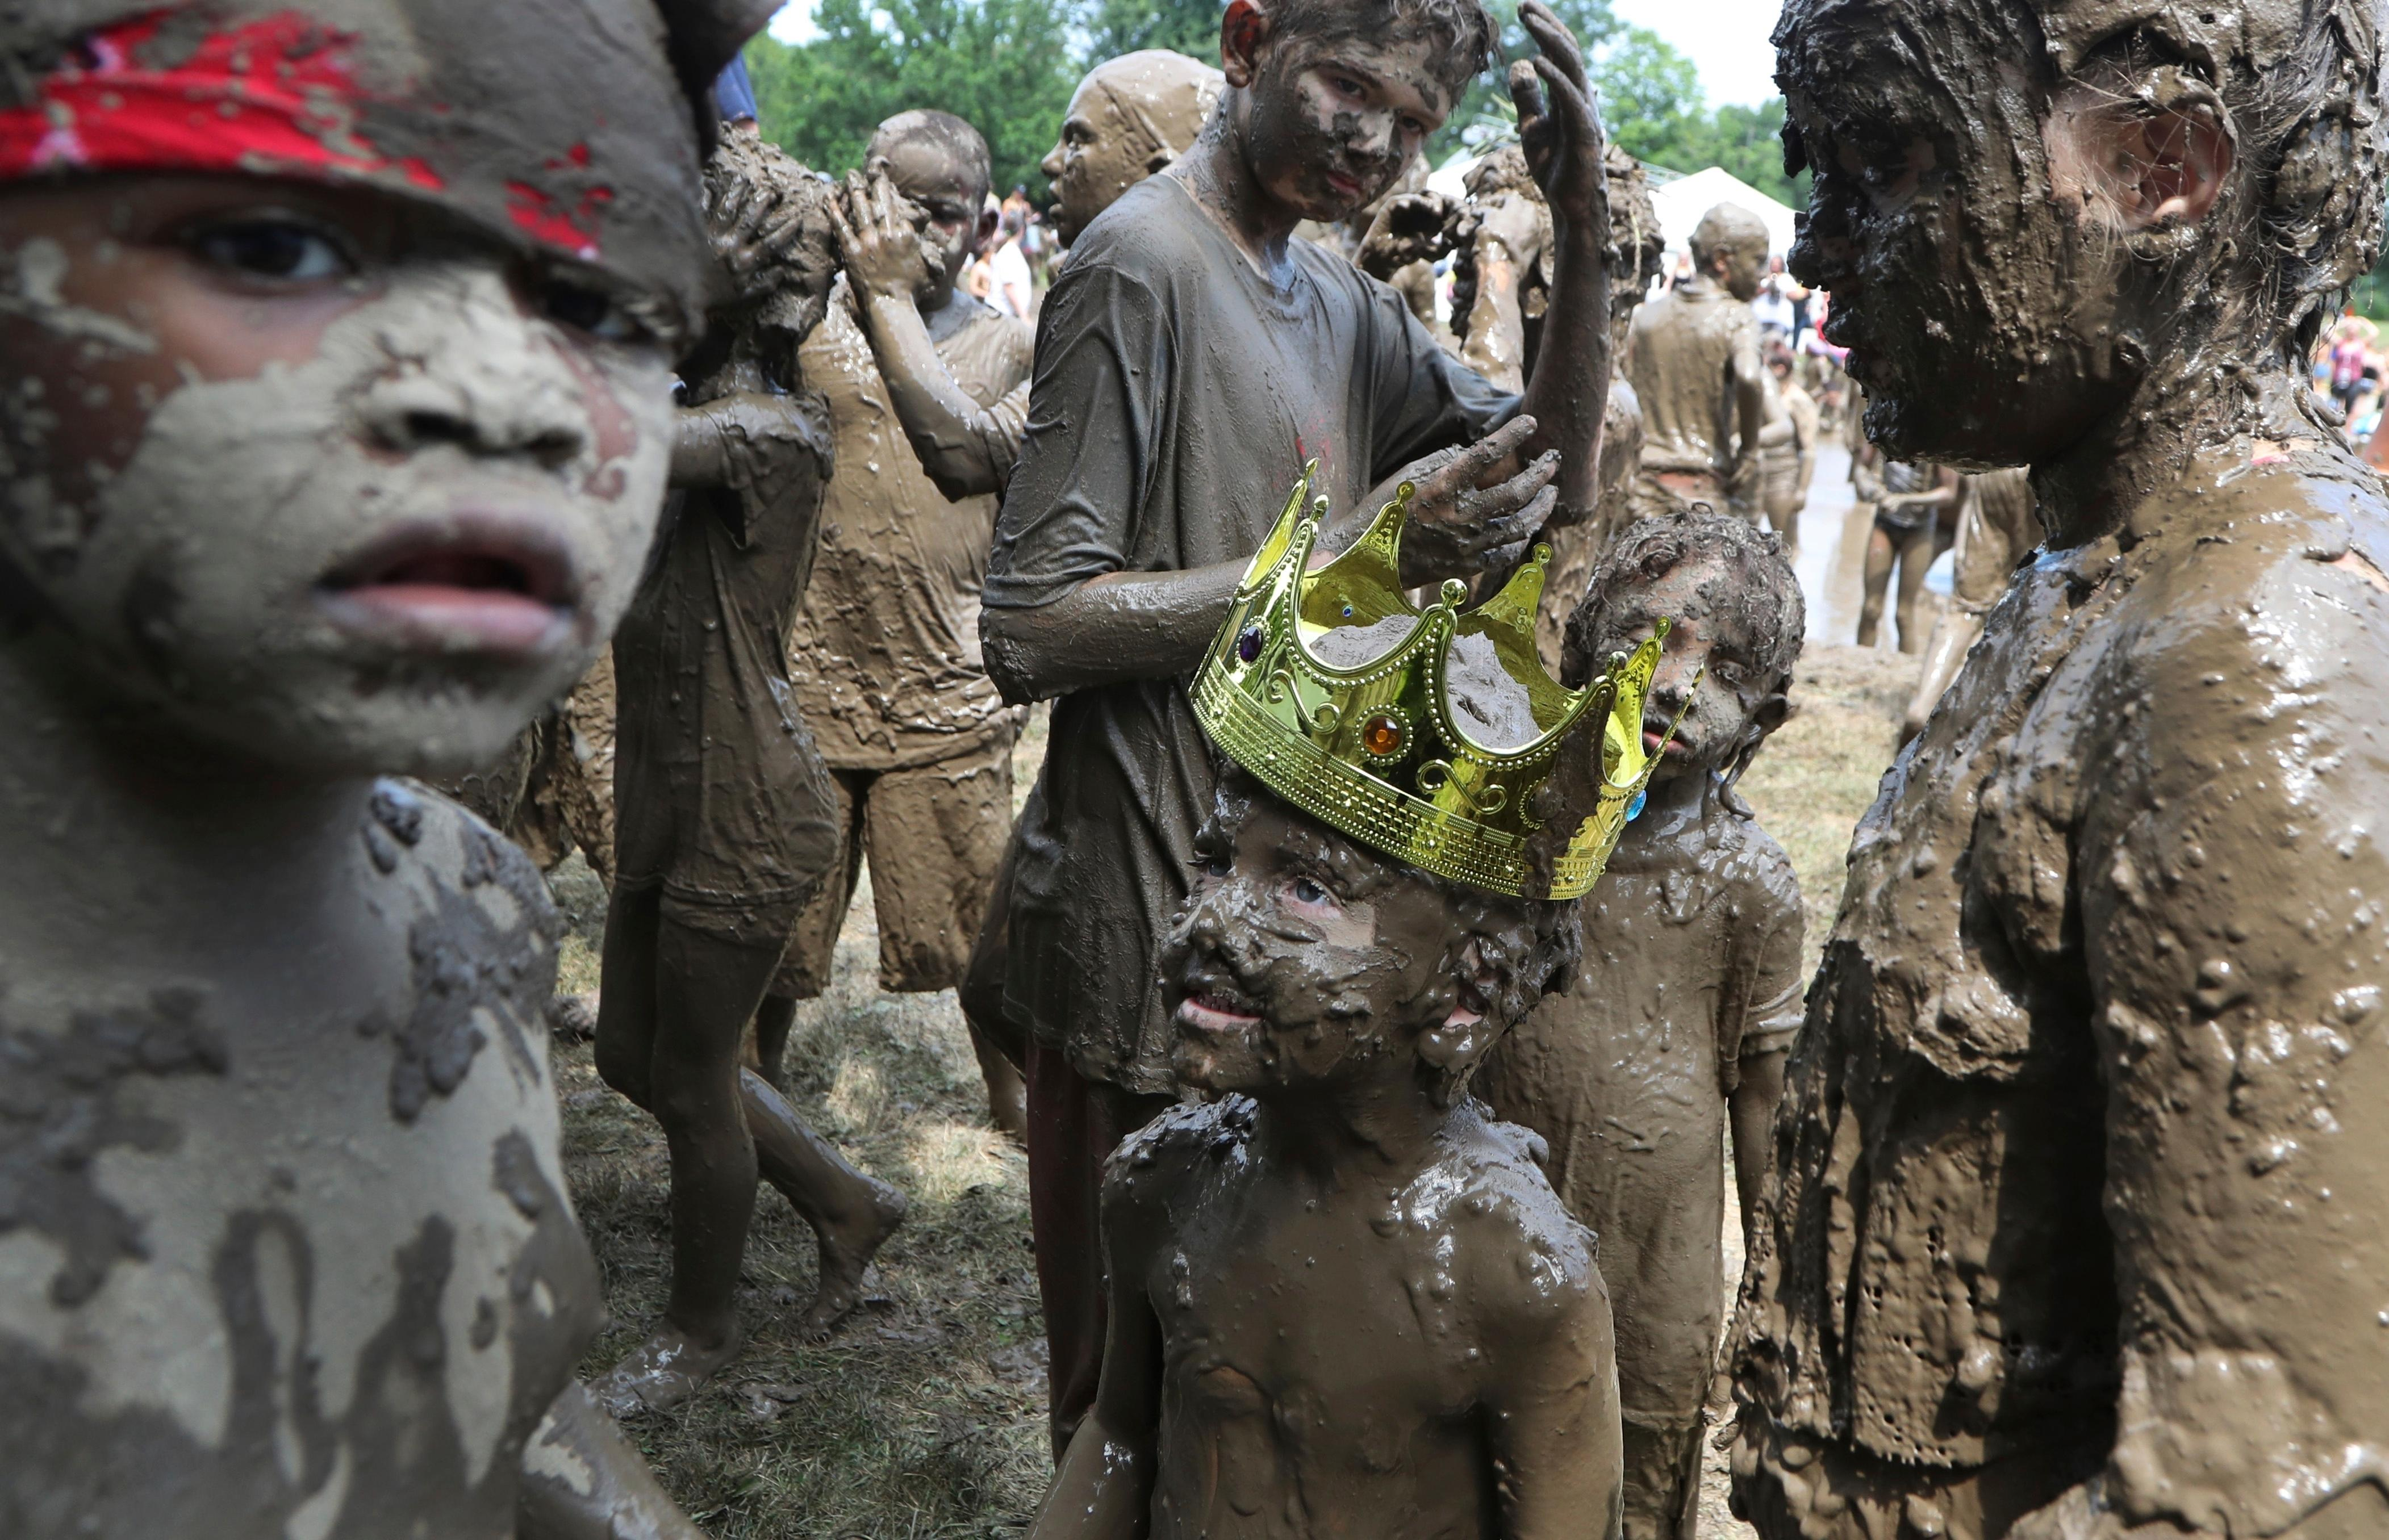 Charles Daviskiba, 3, is seen after being crowned Mud Day King during Mud Day at the Nankin Mills Park, Tuesday, July 10, 2018, in Westland, Mich. The event marked the 31st year Wayne County Parks has hosted the event. While much of the event was children and parents playing in the mud, park officials organized various races and a limbo line. (AP Photo/Carlos Osorio)